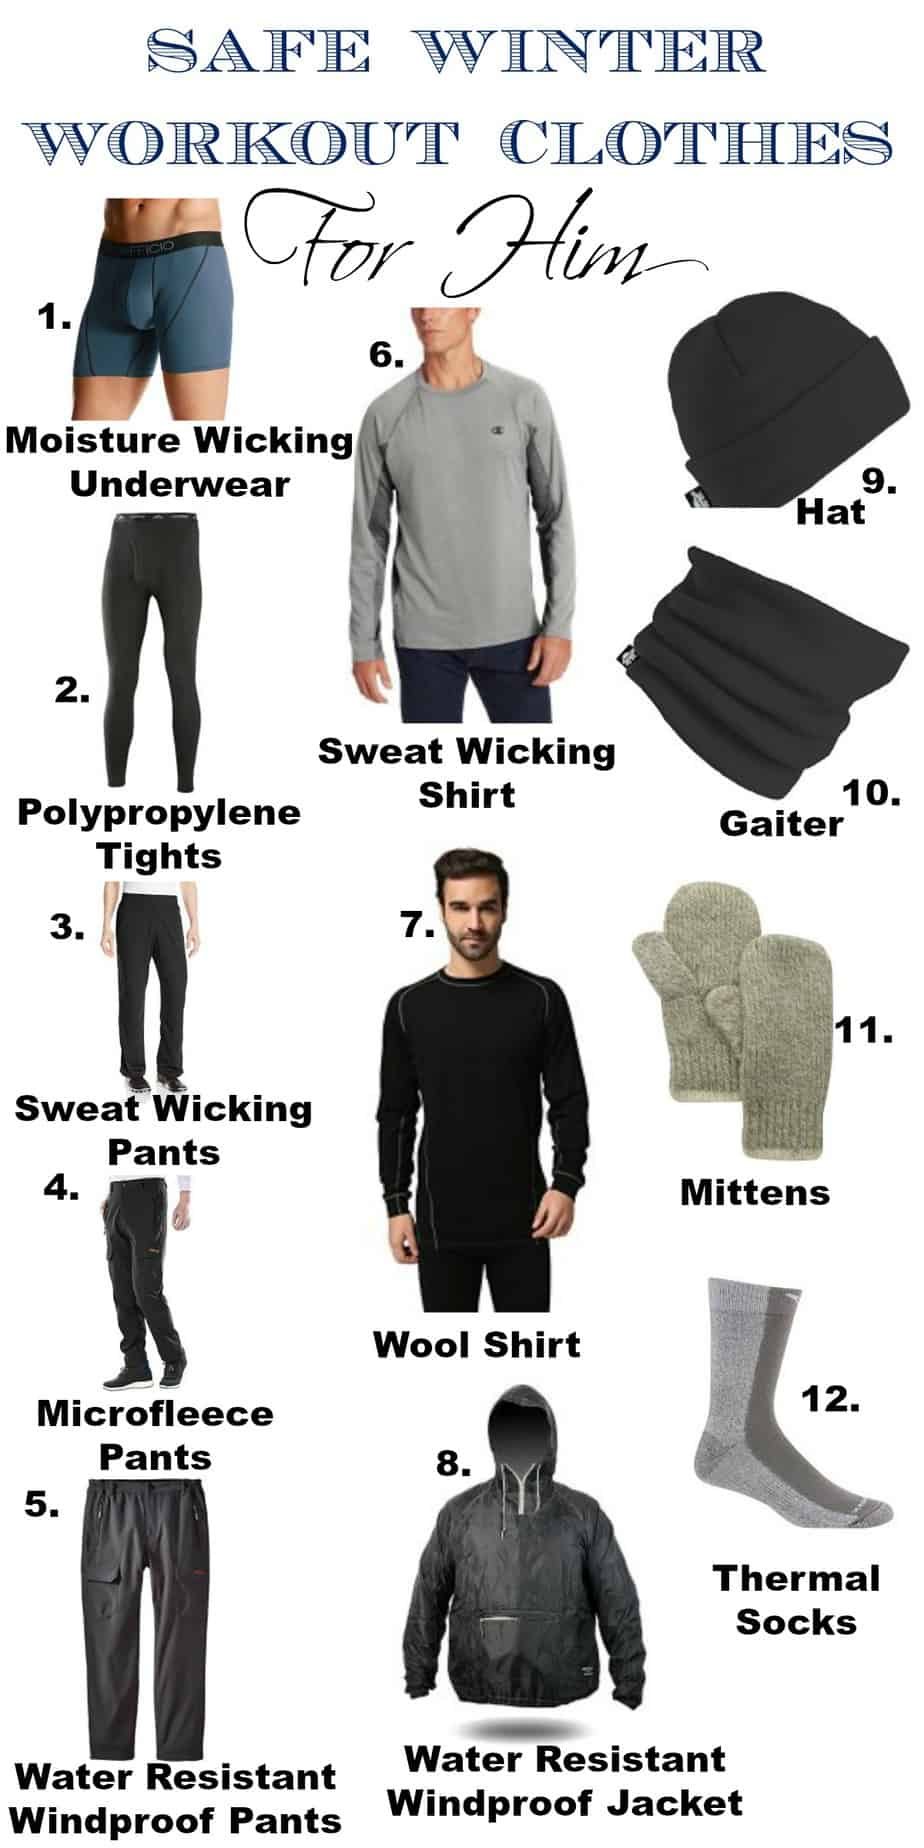 Safe Winter Workout Clothes